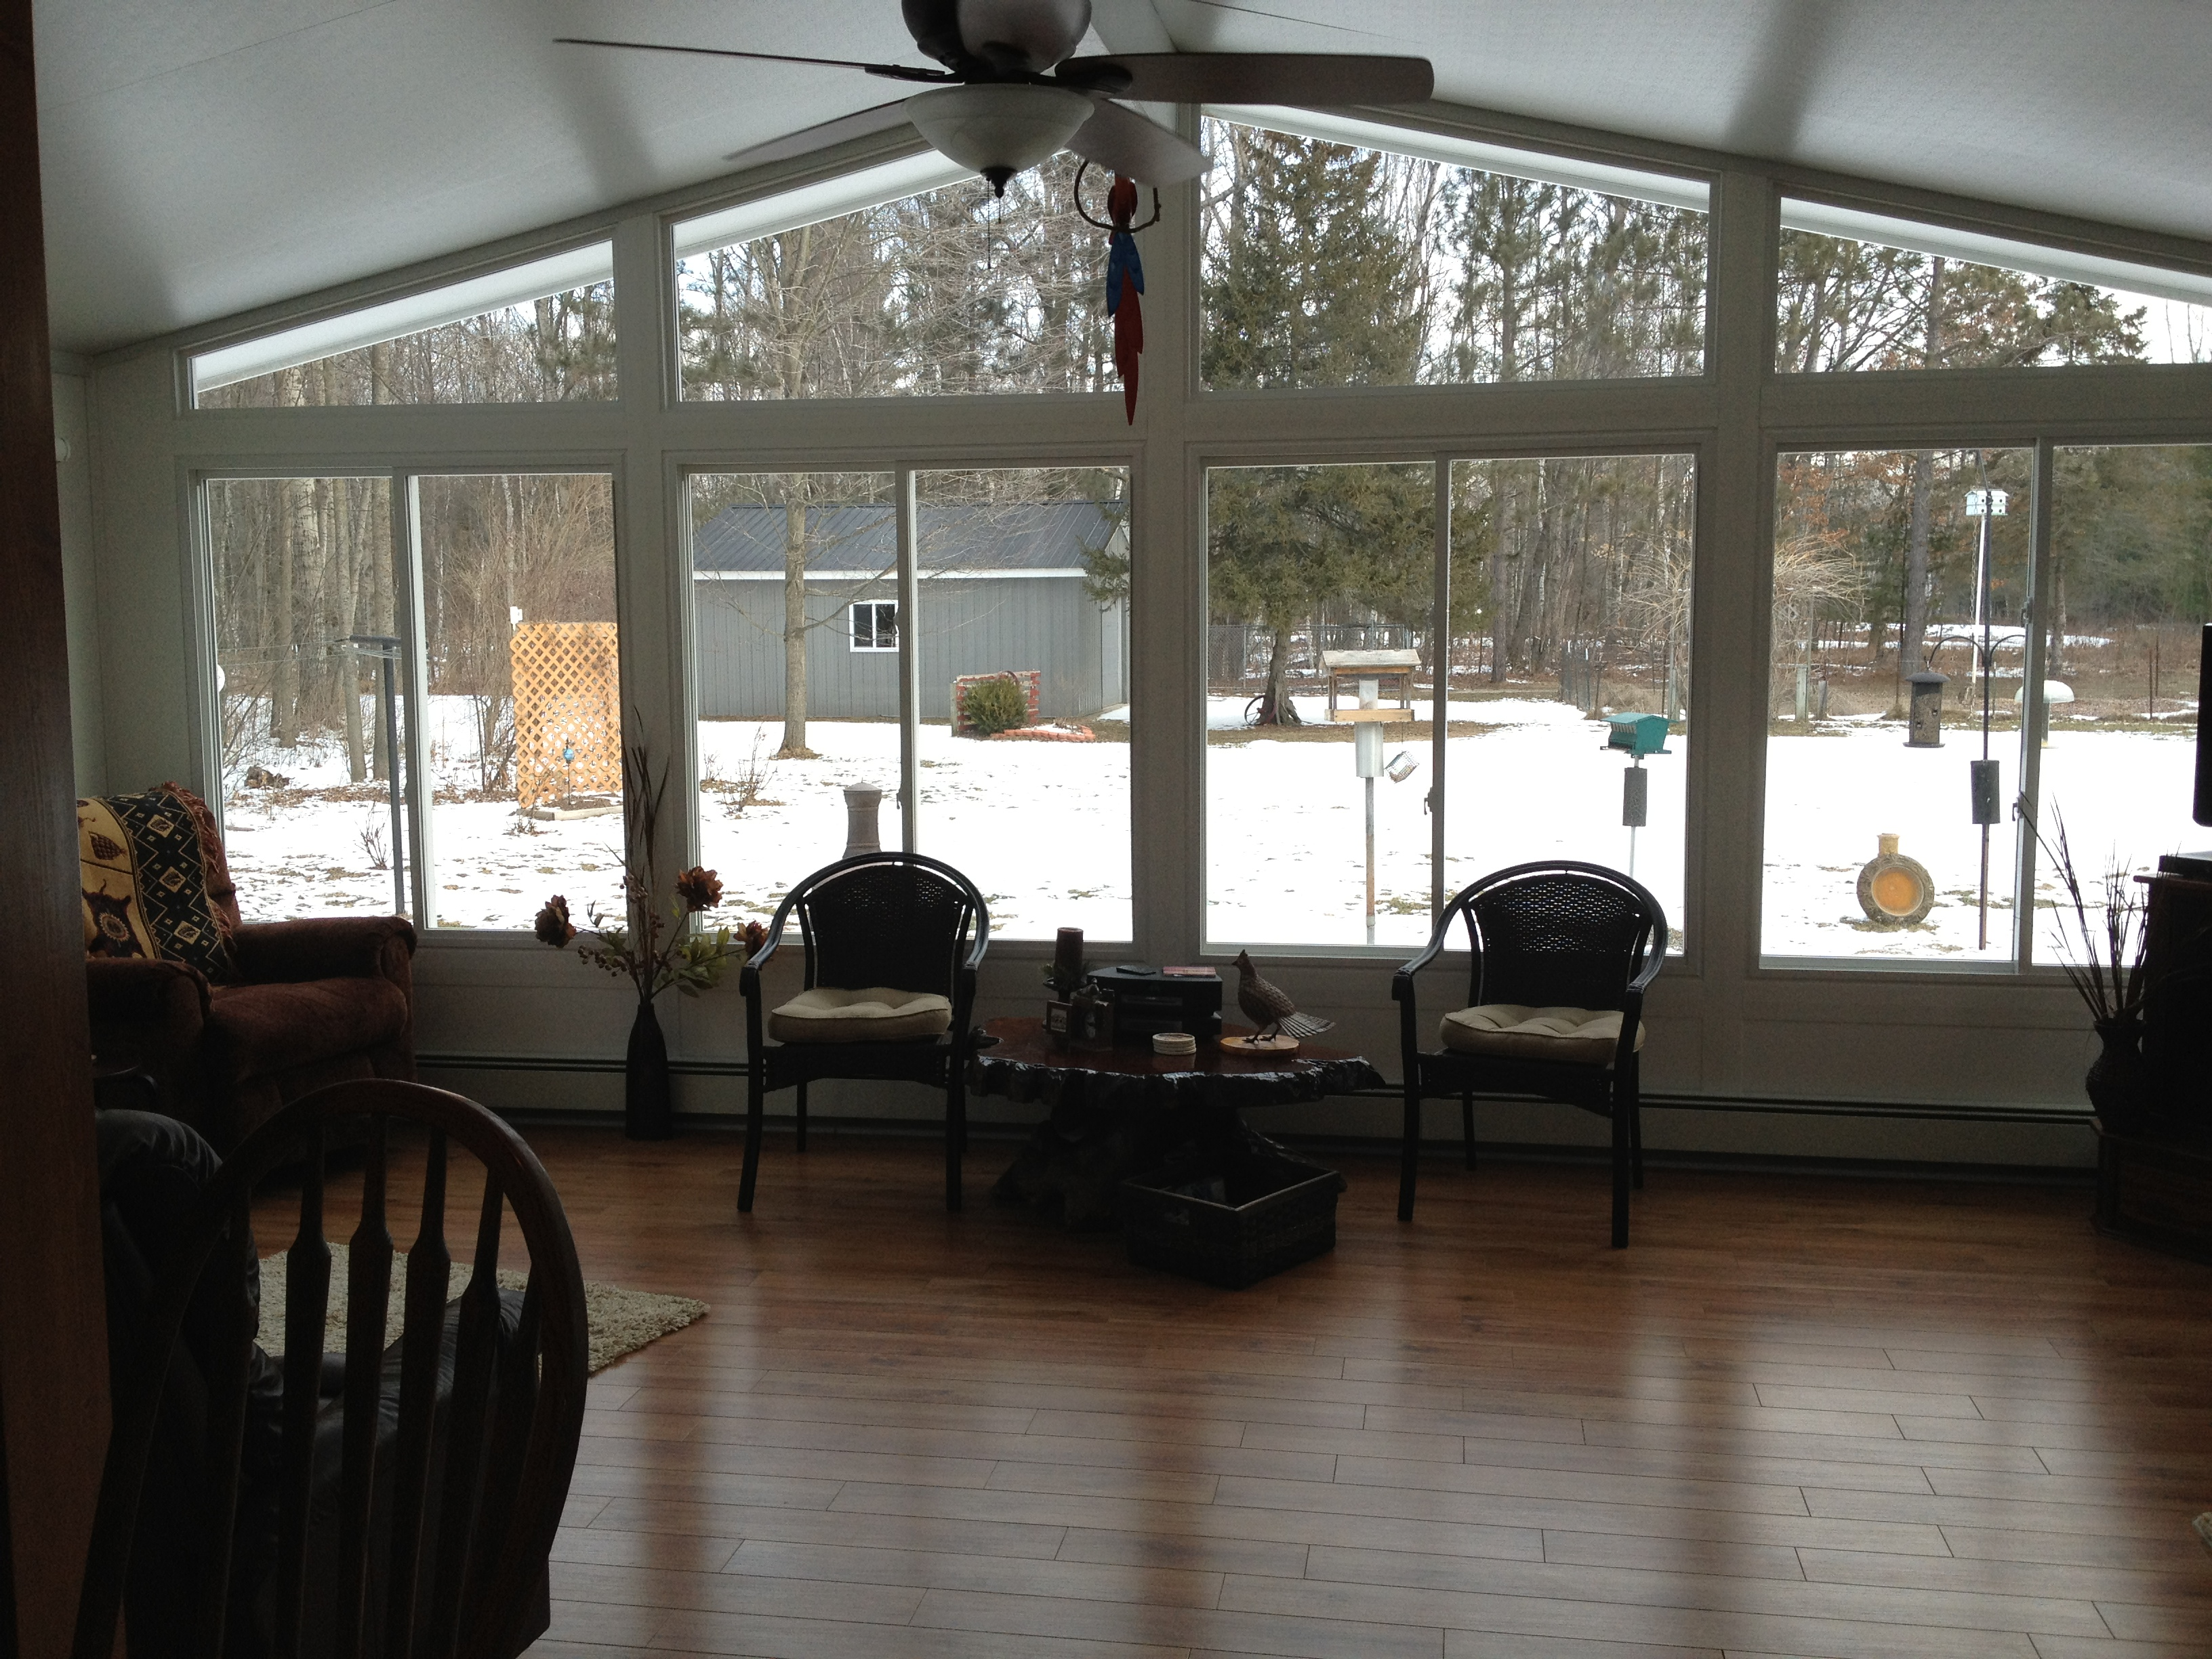 Interior View with Wood Floor in All-Glass Gable Style Sunroom in Northern Michigan